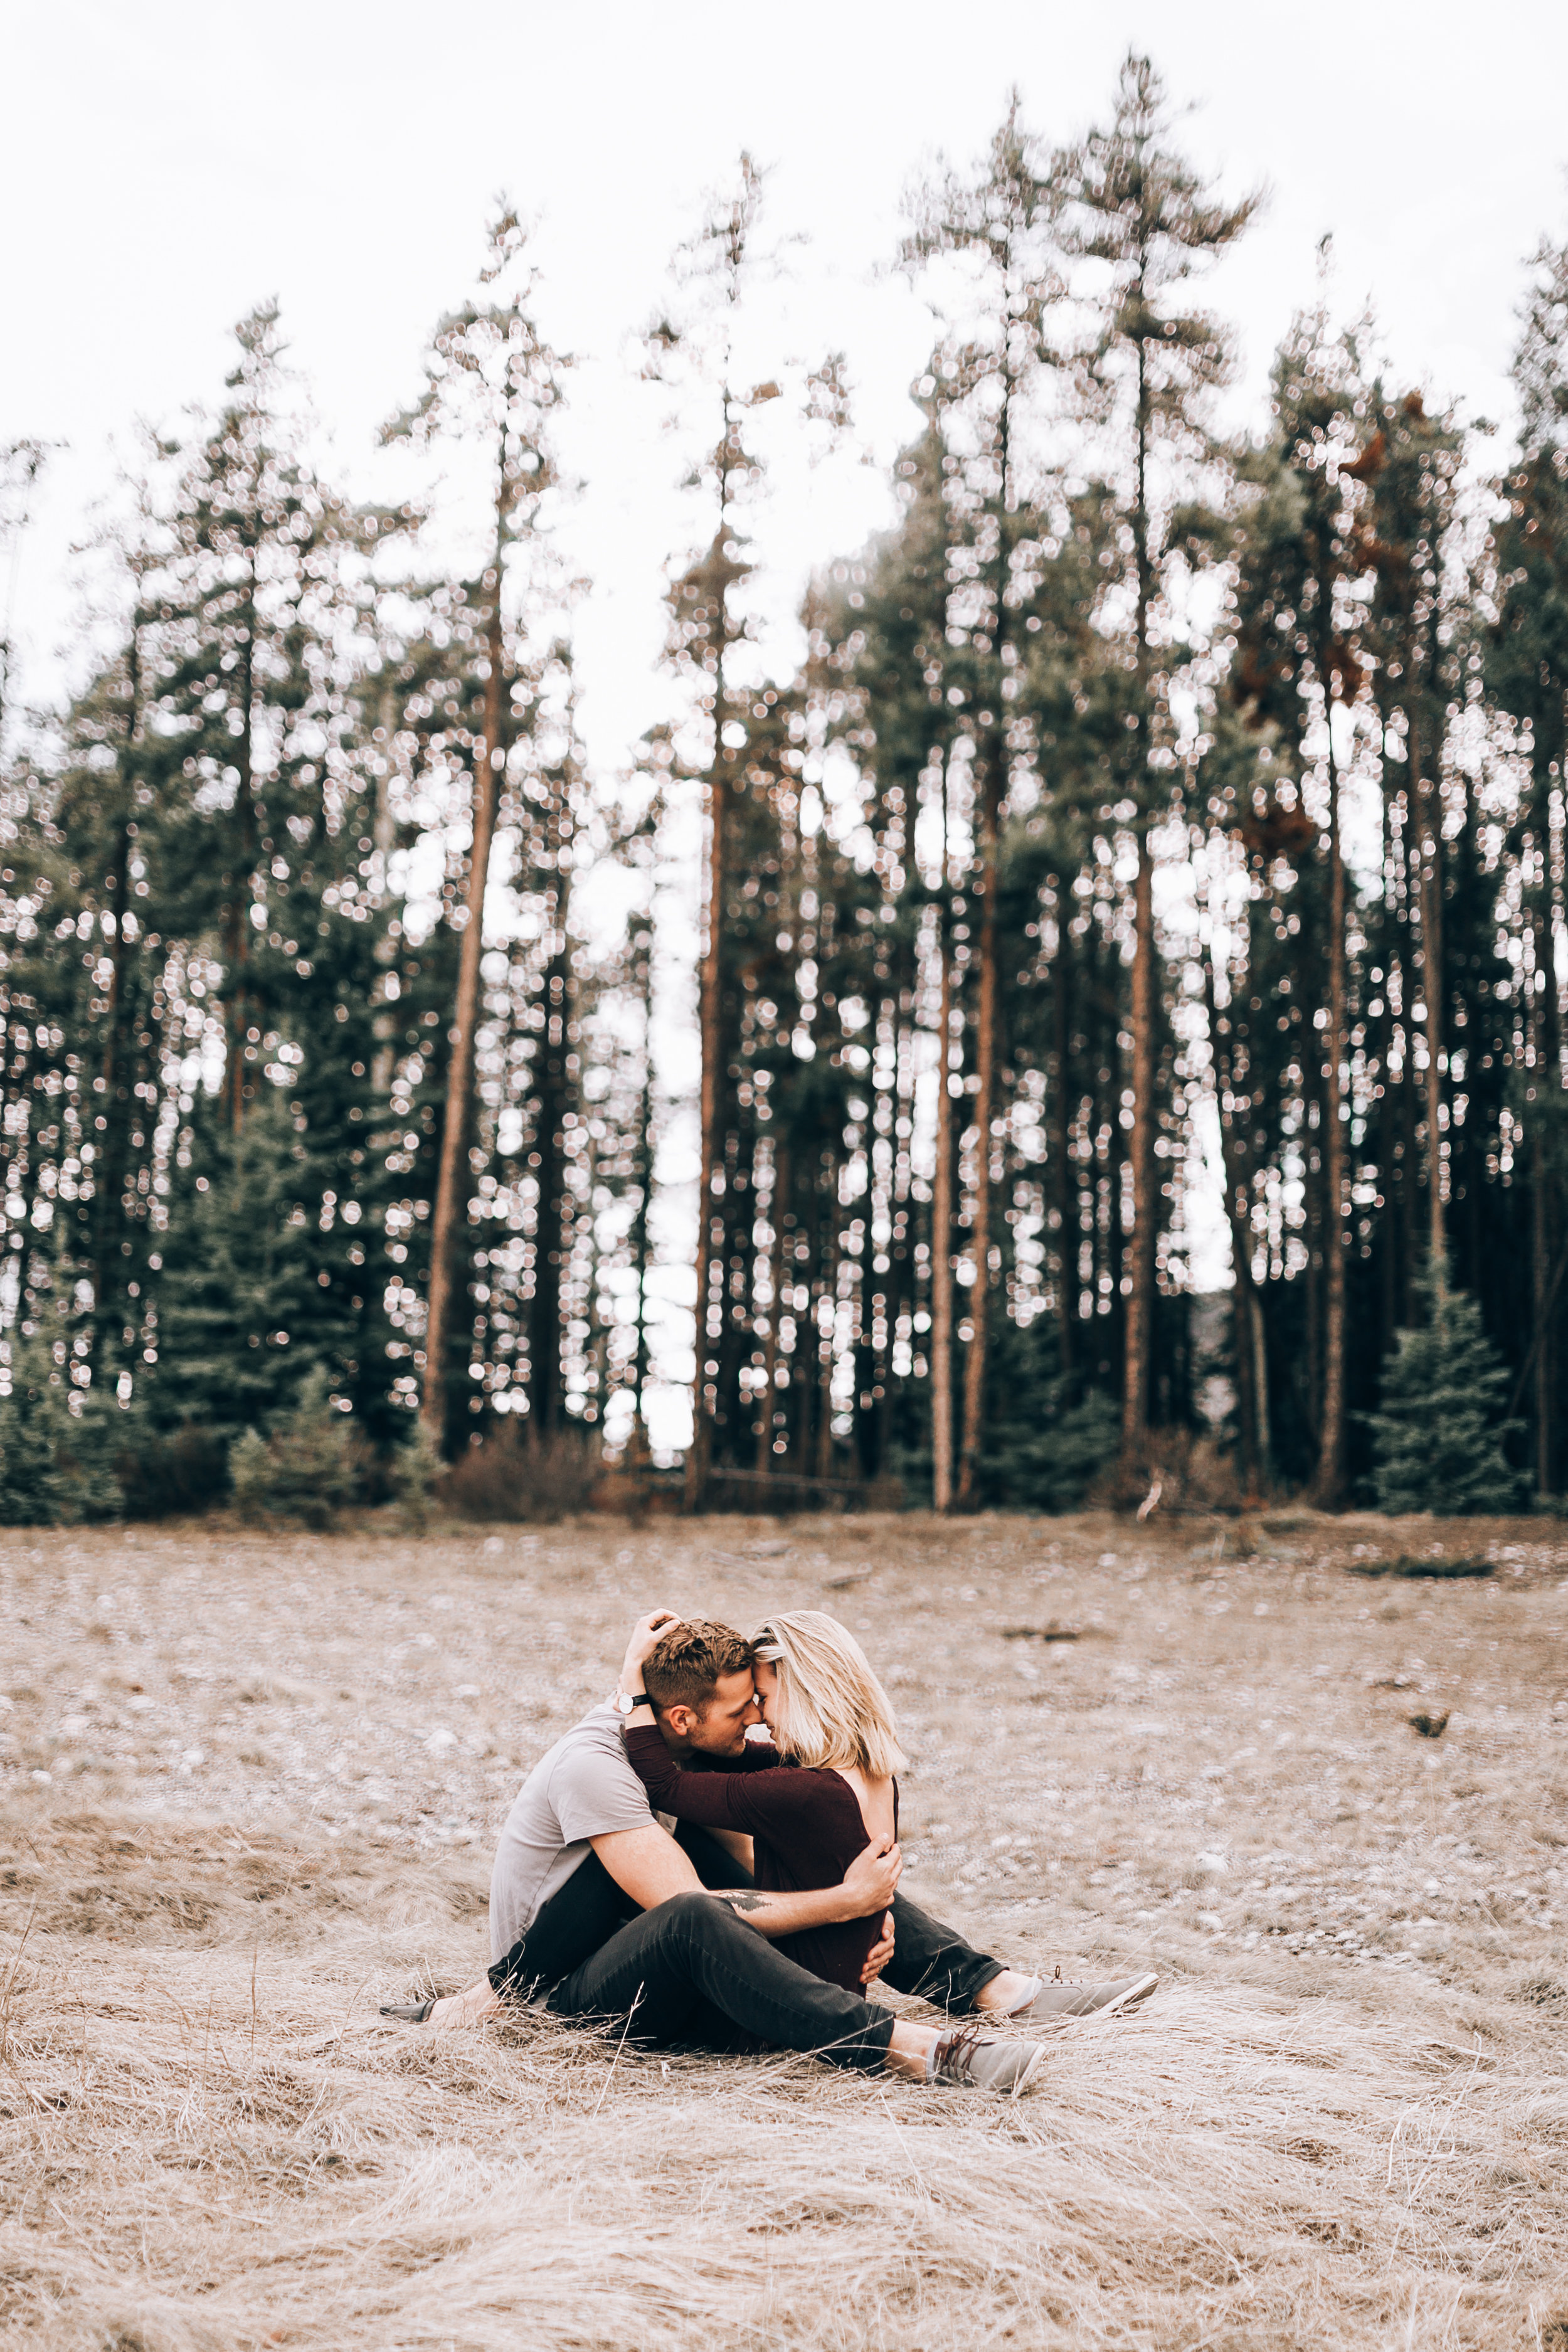 simpleperfectionsphotography.cullen+chelsey-46.jpg